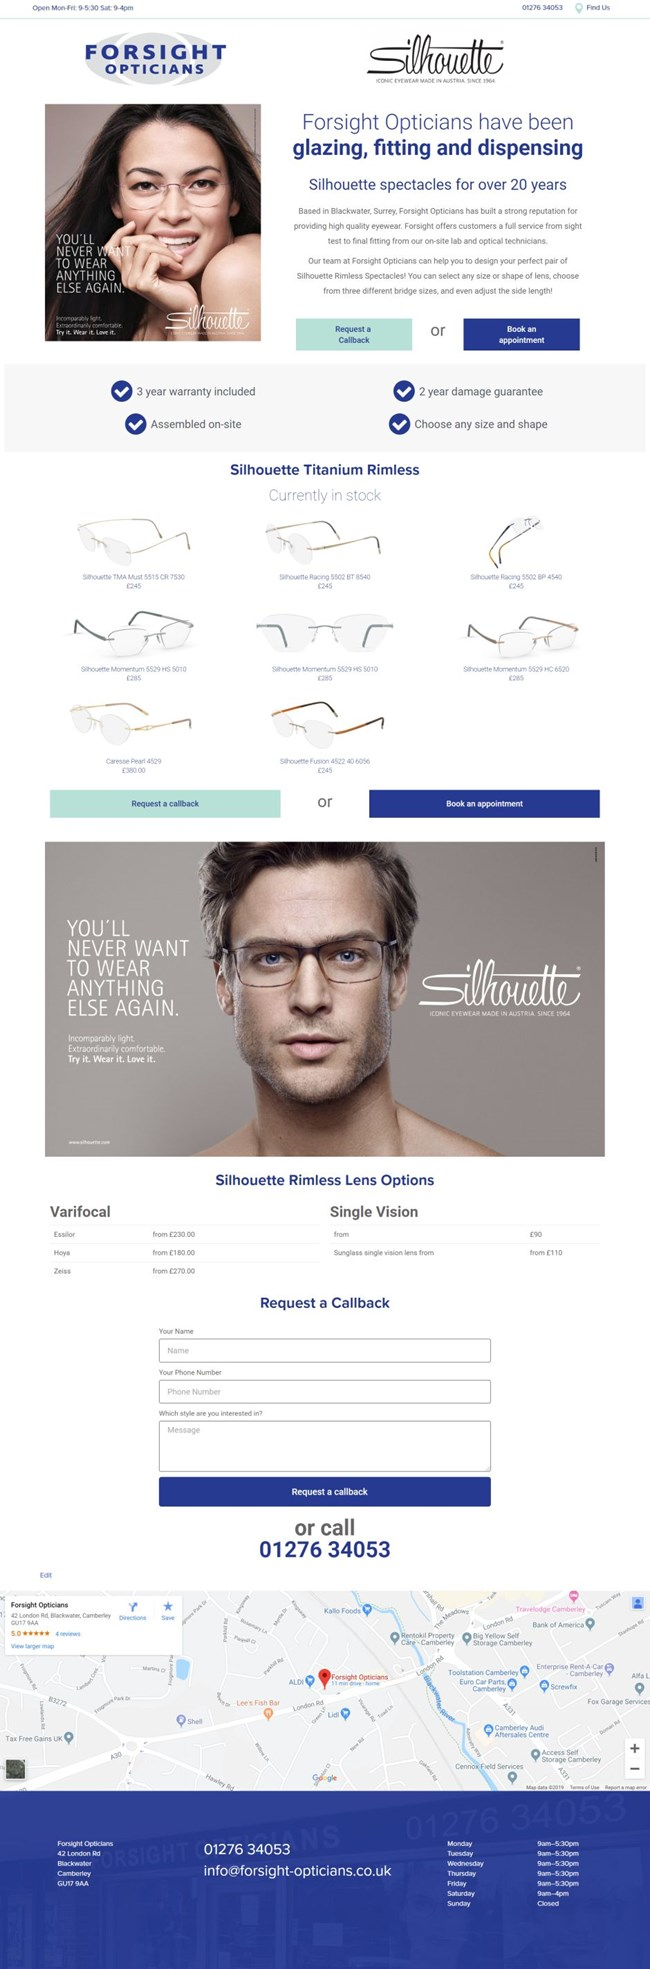 Forsight Opticians Wordpress Web Design SP005 Silhouette Glasses